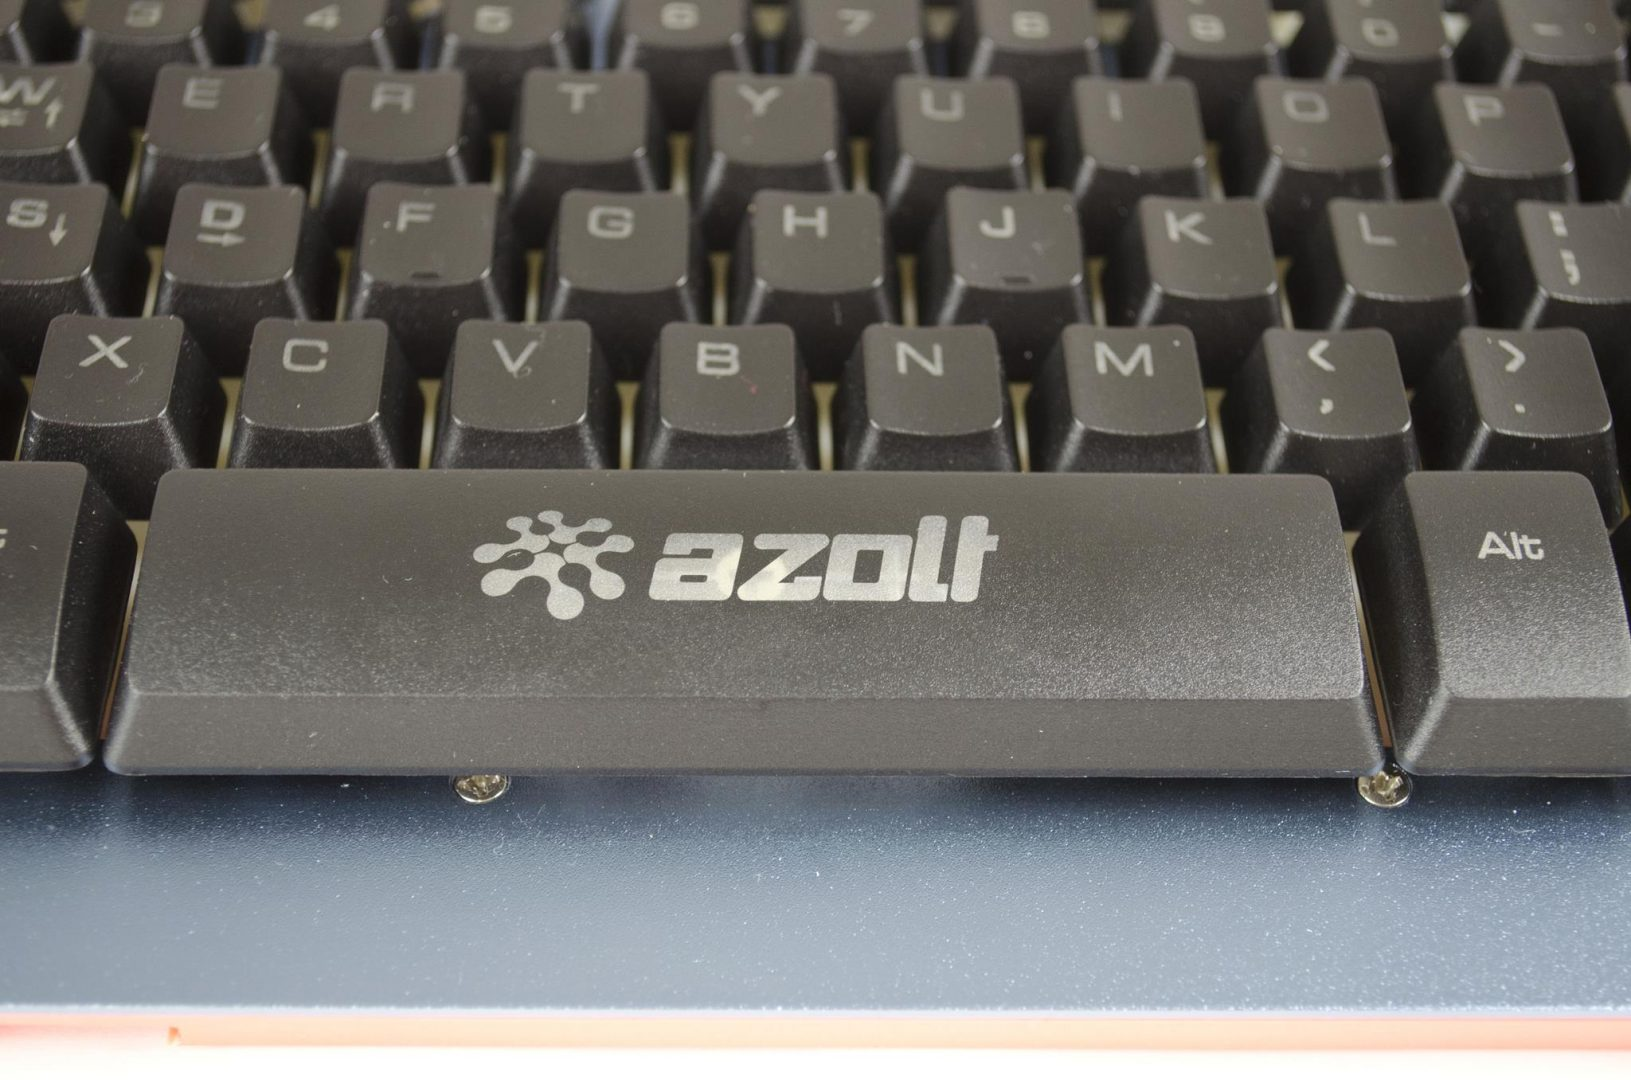 Azolt gCrusayder keyboard review_4